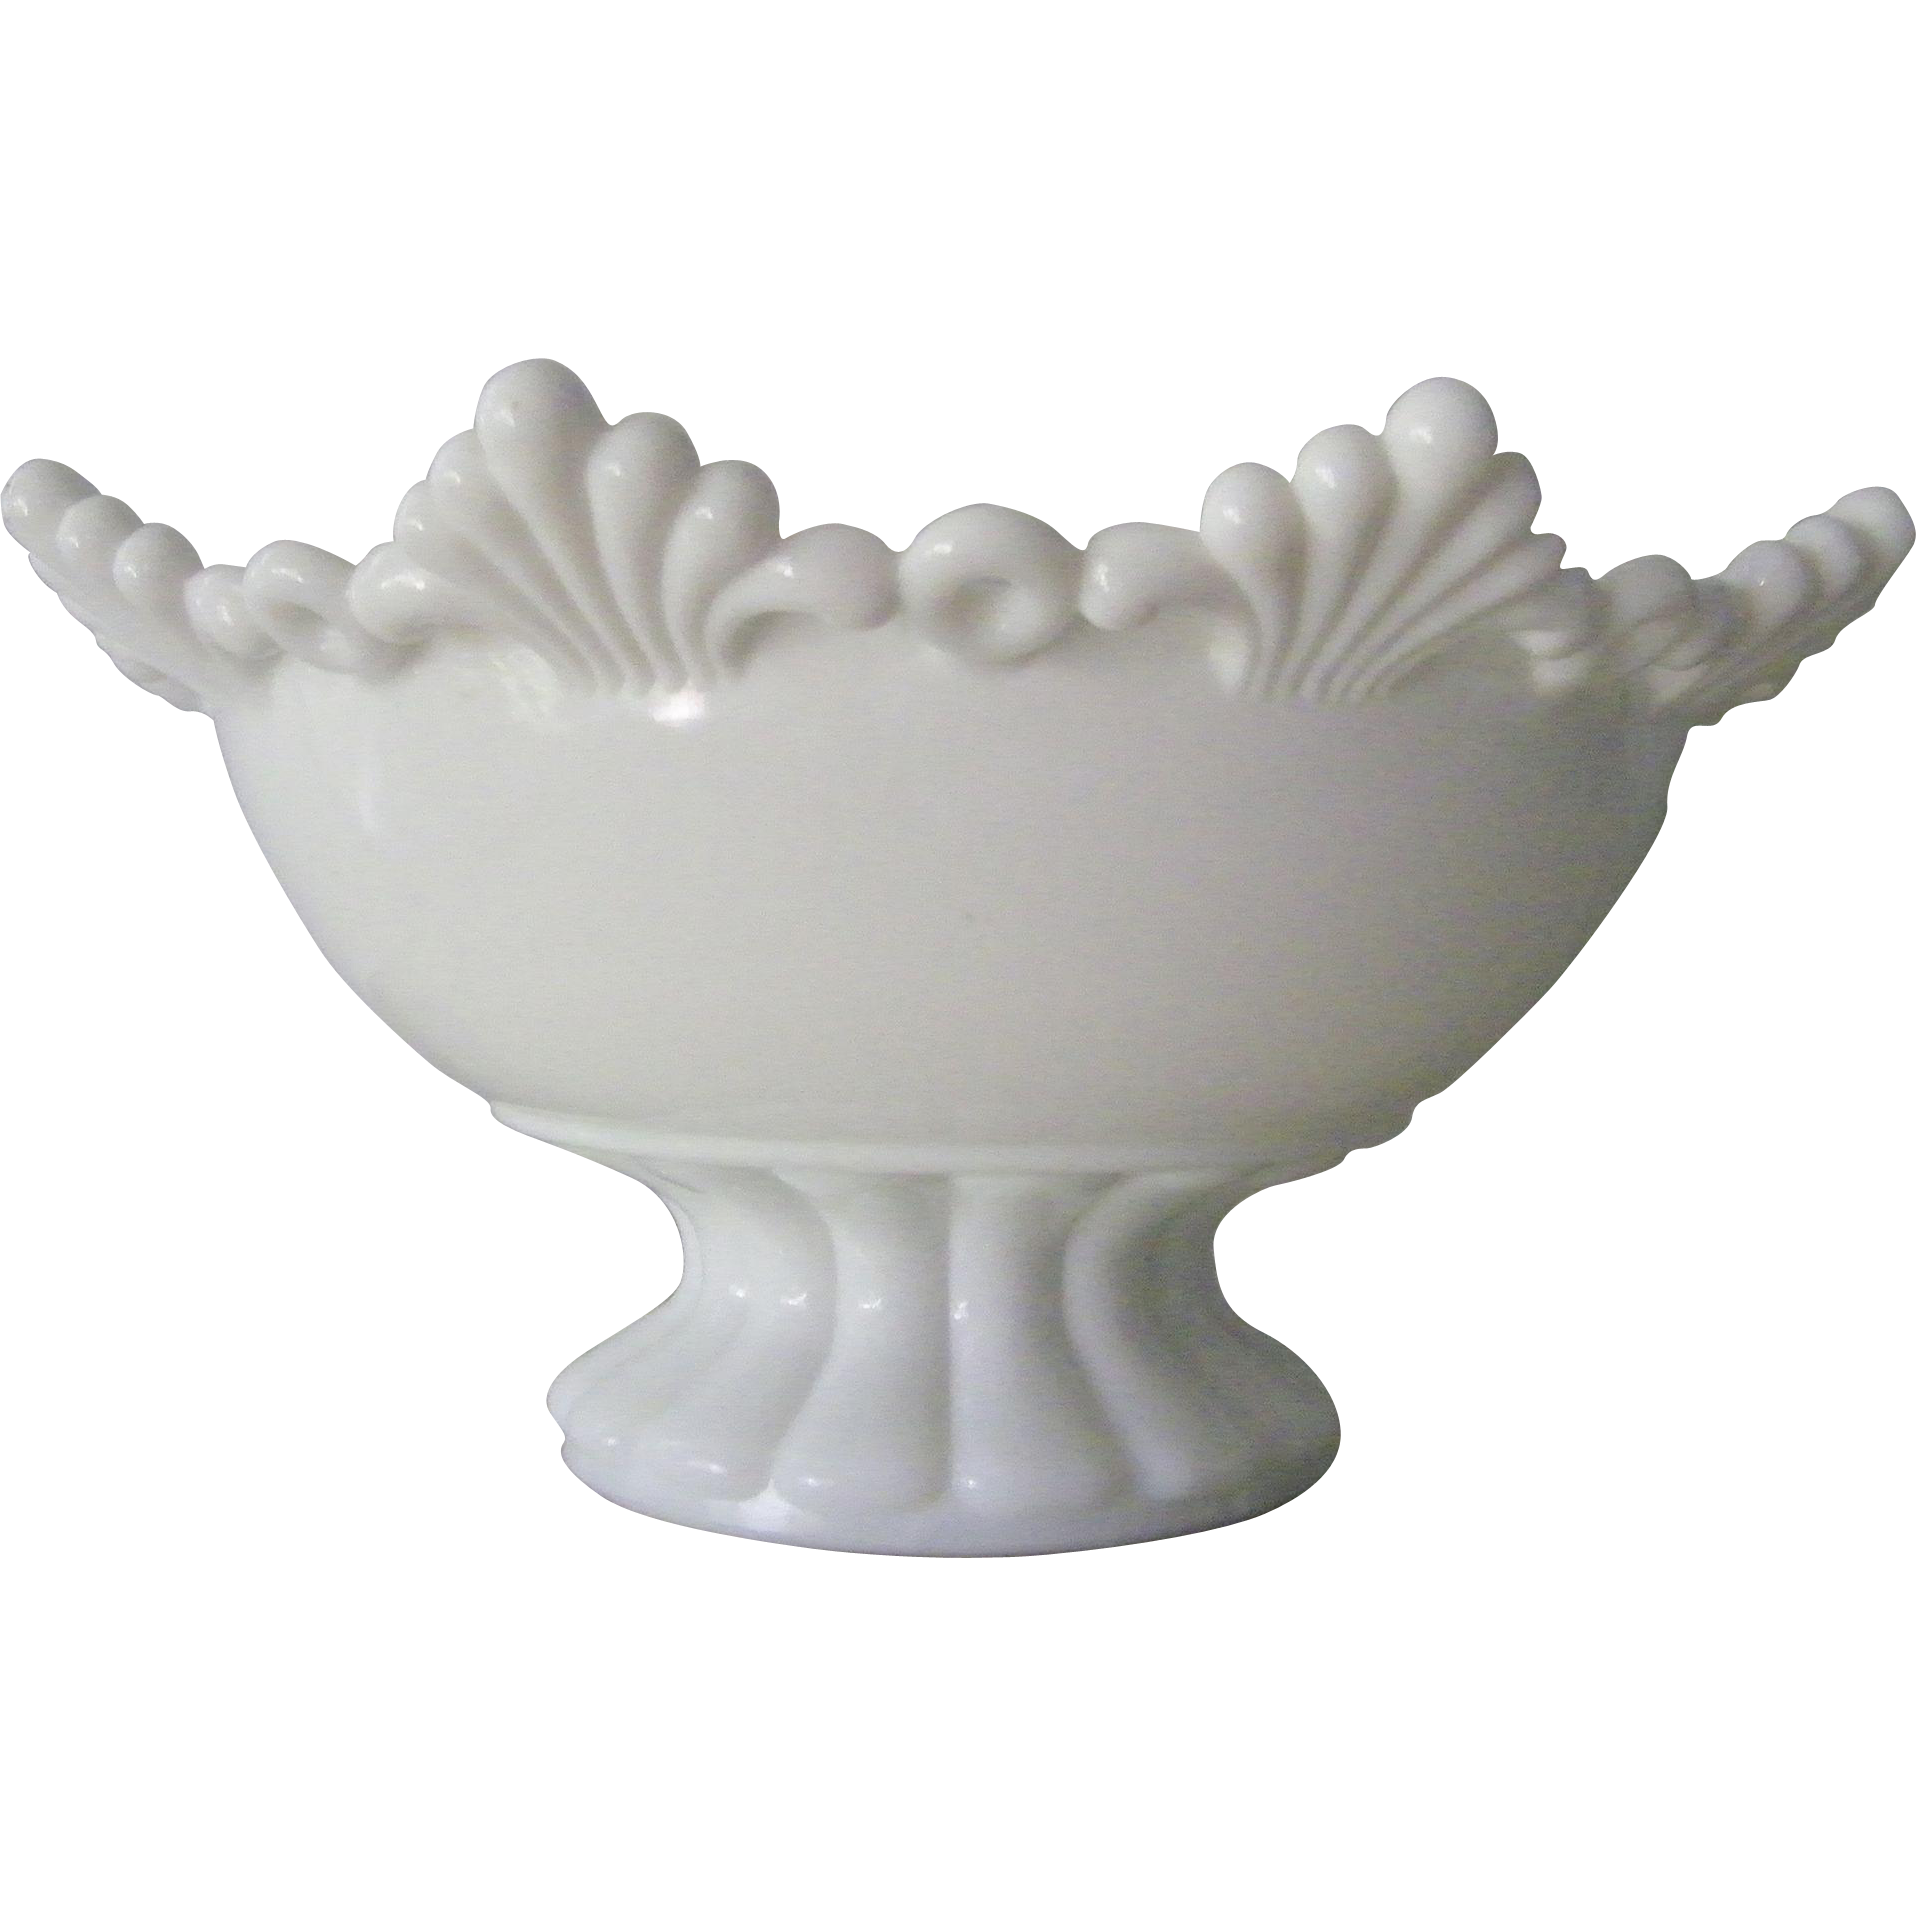 Westmoreland  Milk Glass Bowl Ring and Petal mint condition